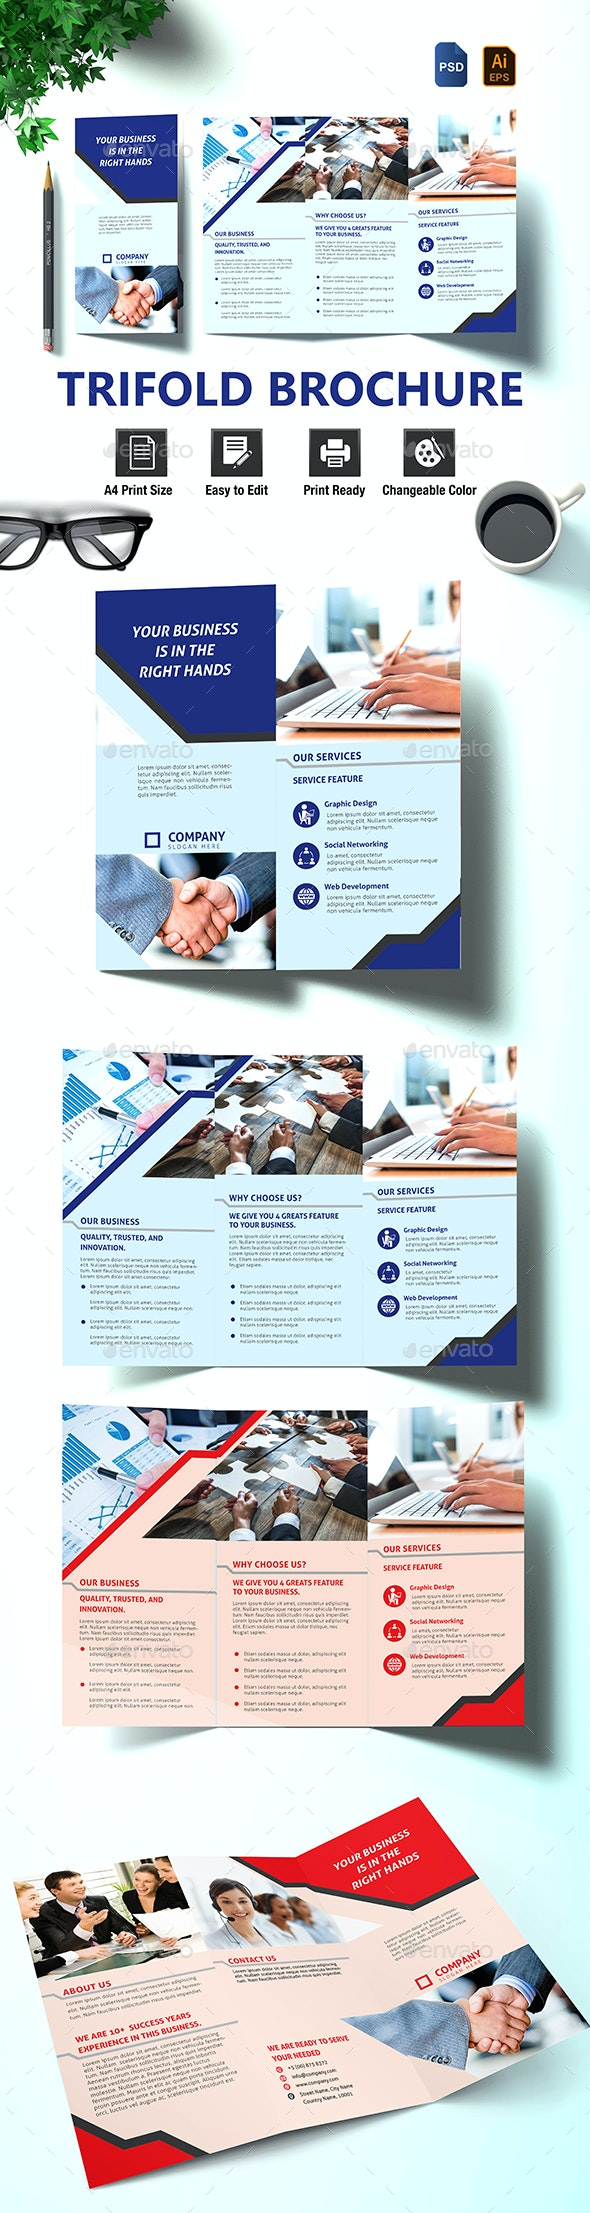 Trifold Brochure - Stationery Print Templates